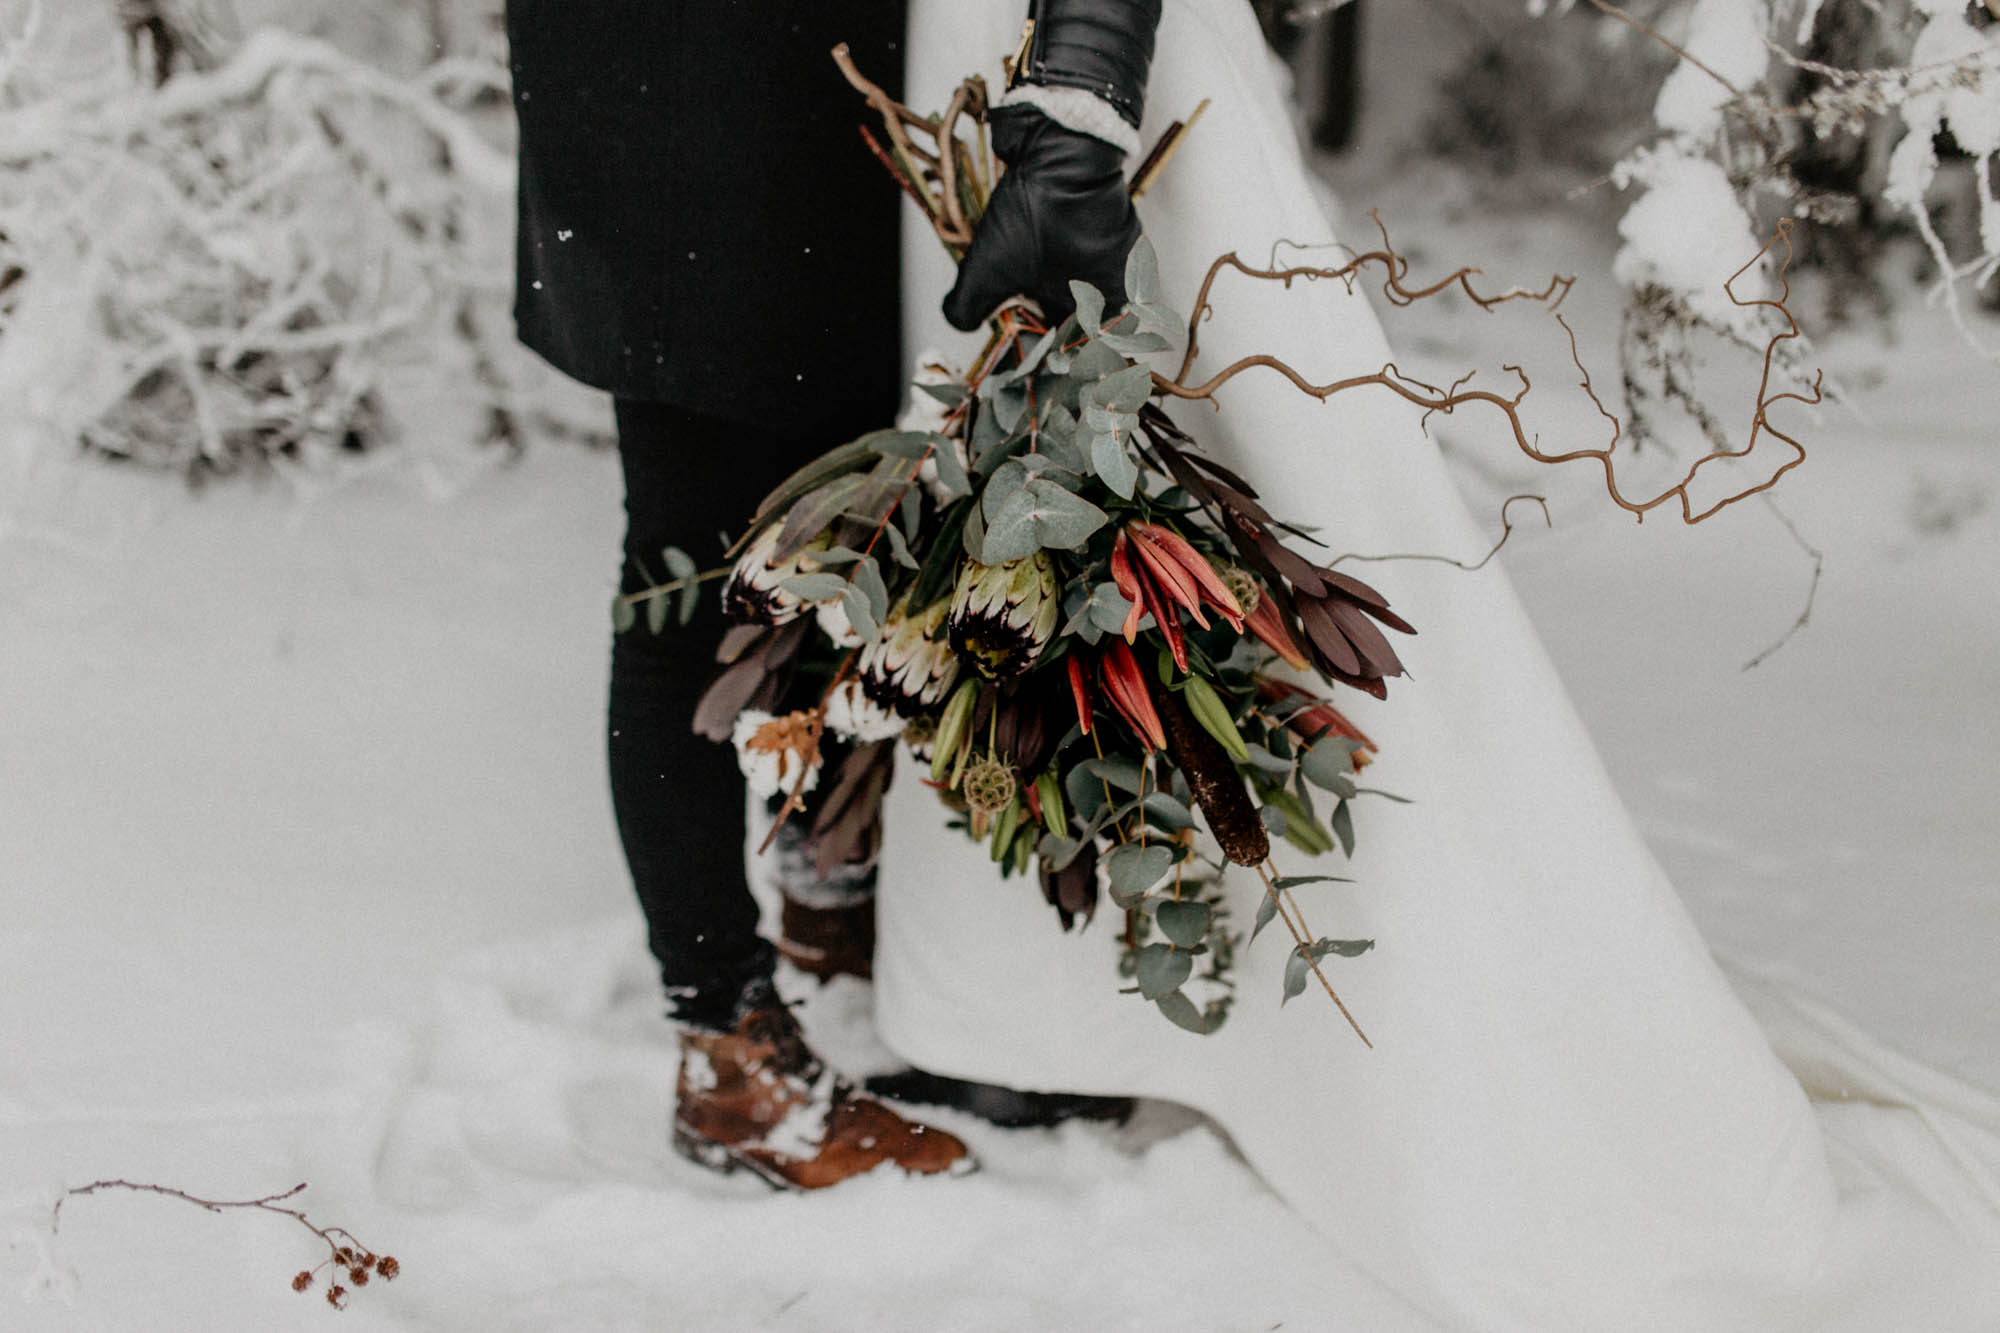 ashley_schulman_photography-winter_wedding_tampere-9.jpg